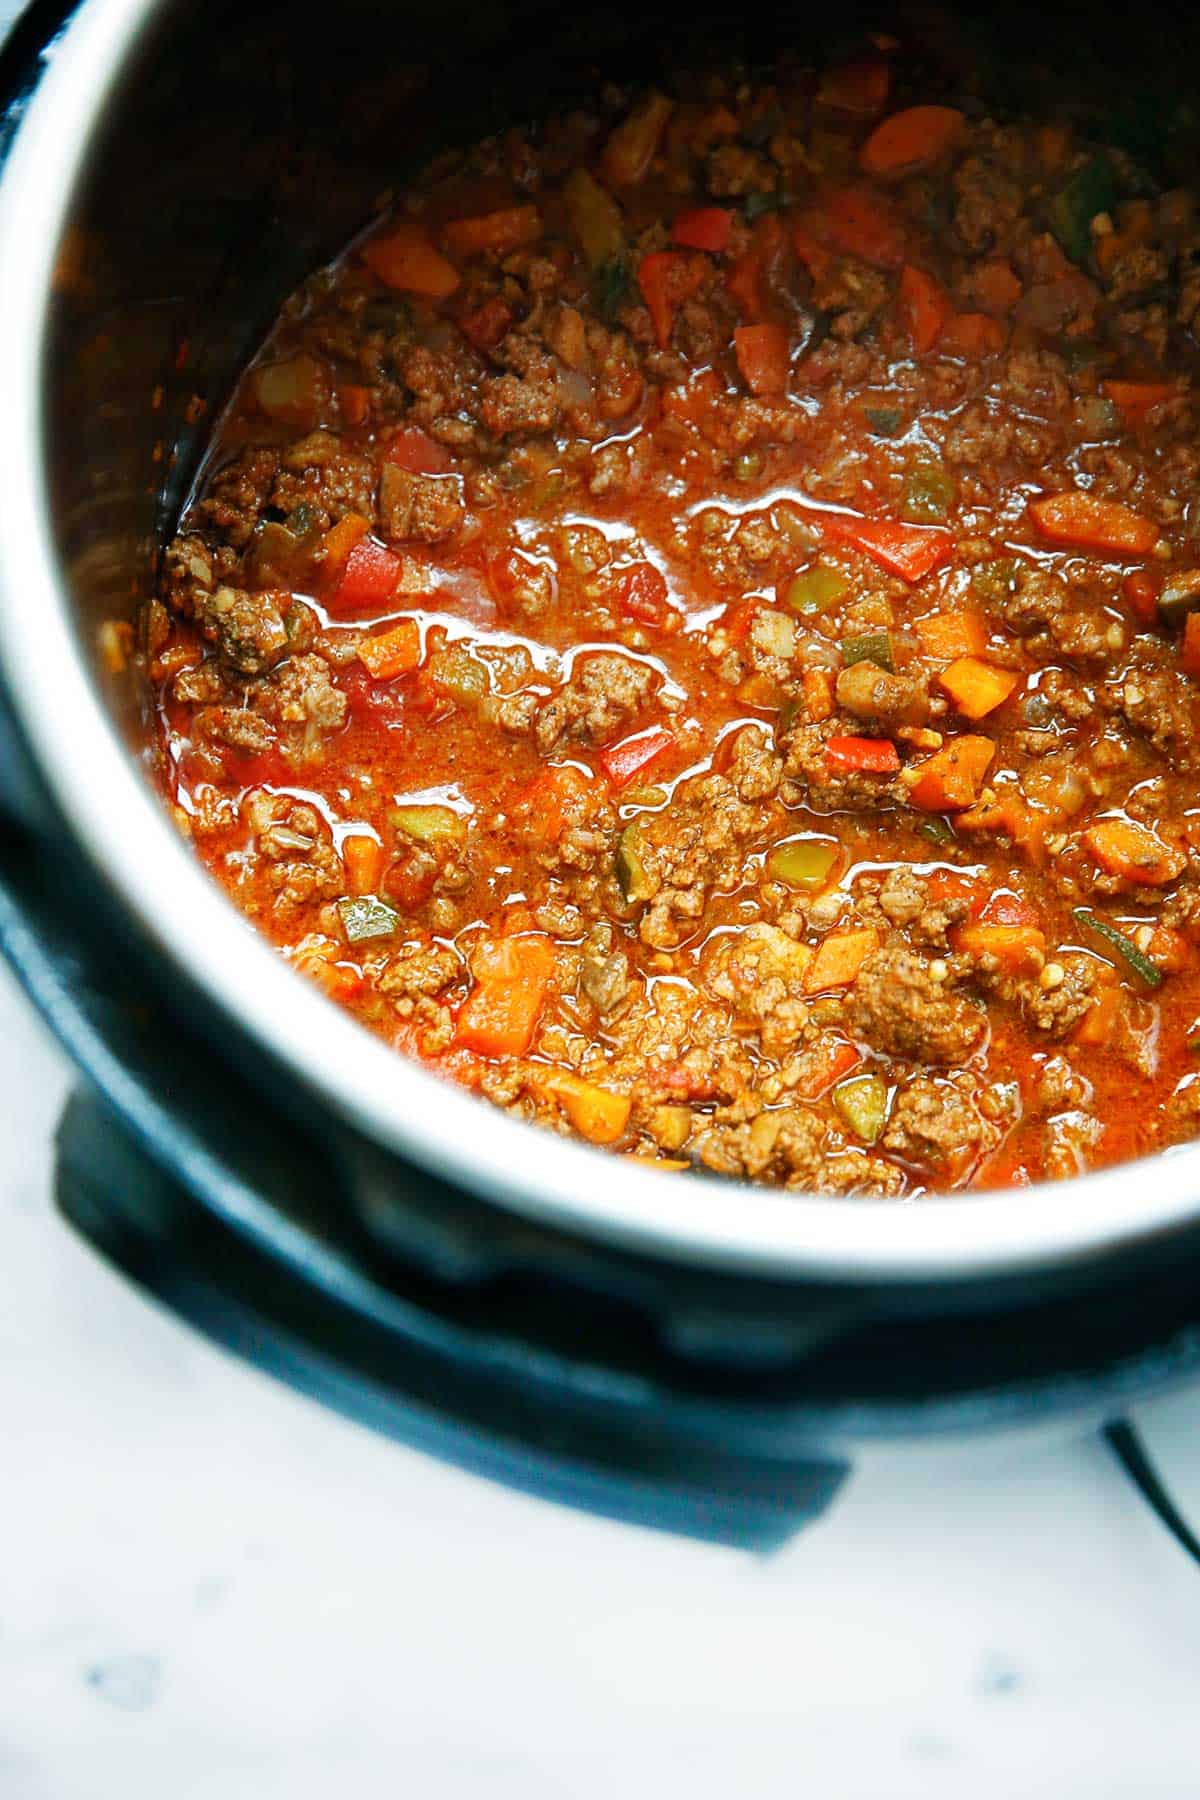 How To Make The Best Taco Meat In The Instant Pot Lexi S Clean Kitchen